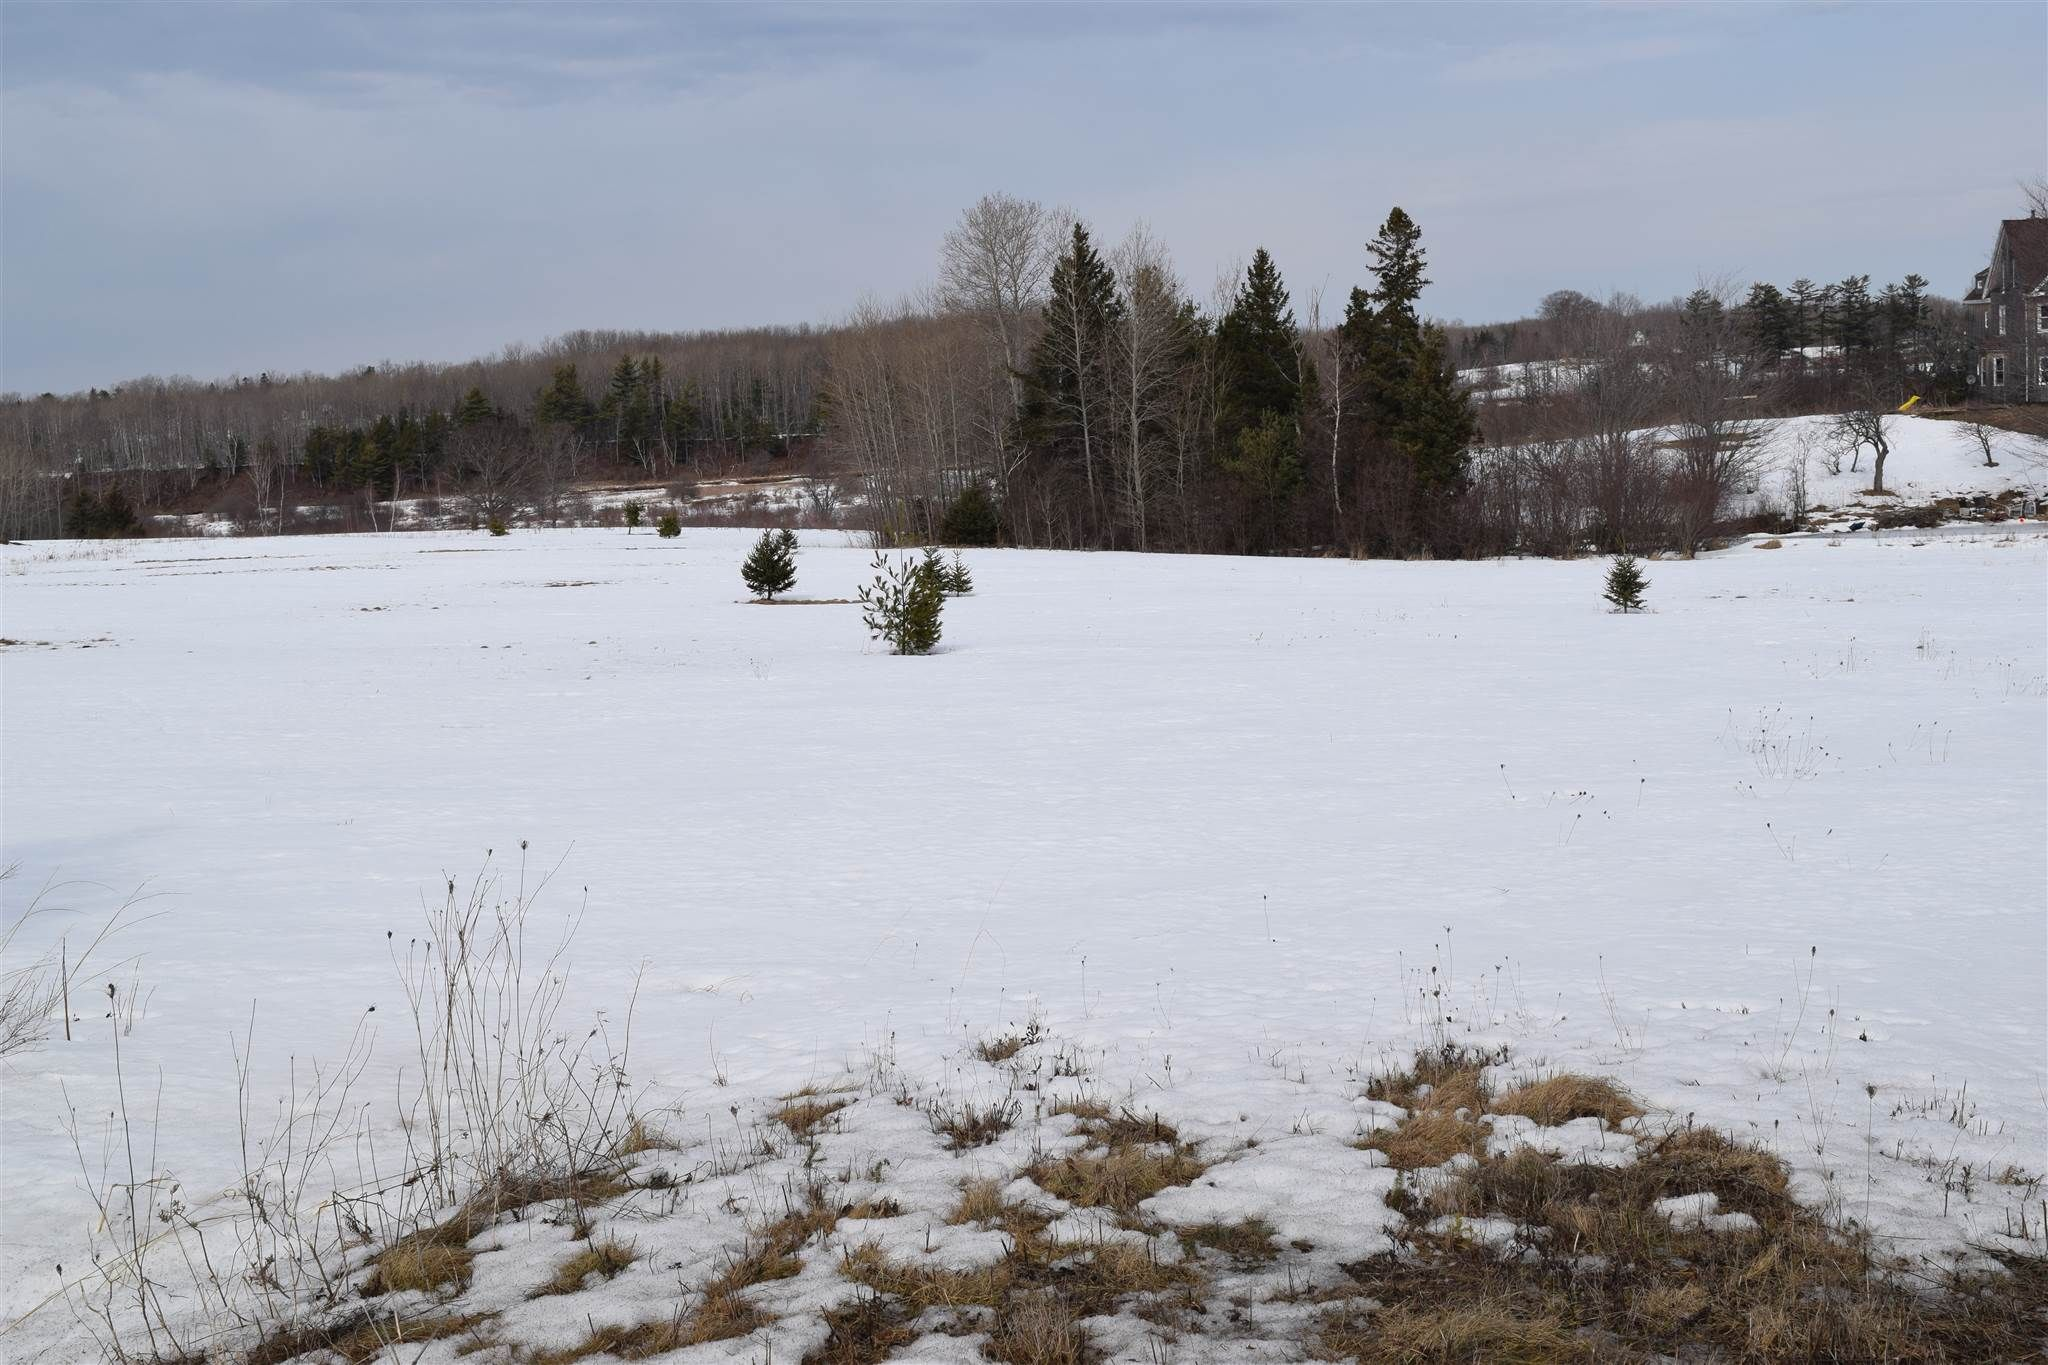 Main Photo: 311 Highway in Waughs River: 103-Malagash, Wentworth Vacant Land for sale (Northern Region)  : MLS®# 202104722